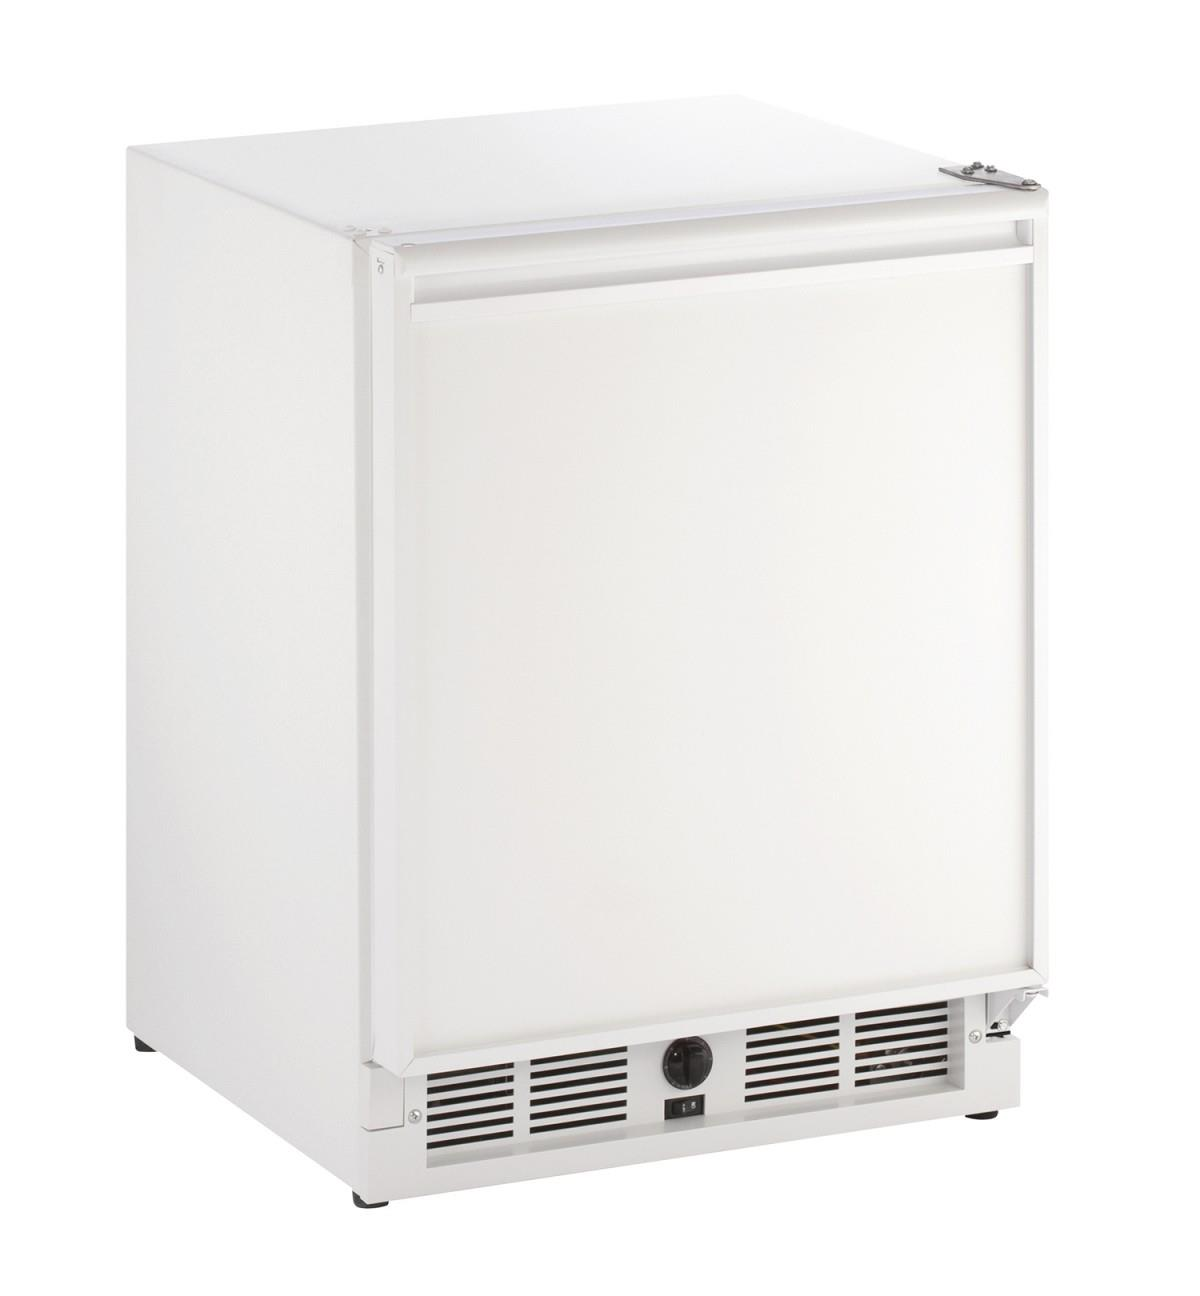 U-Line Refrigerators 2.1 Cu. Ft. Compact Refrigerator - Item Number: U-CO29FW-00A